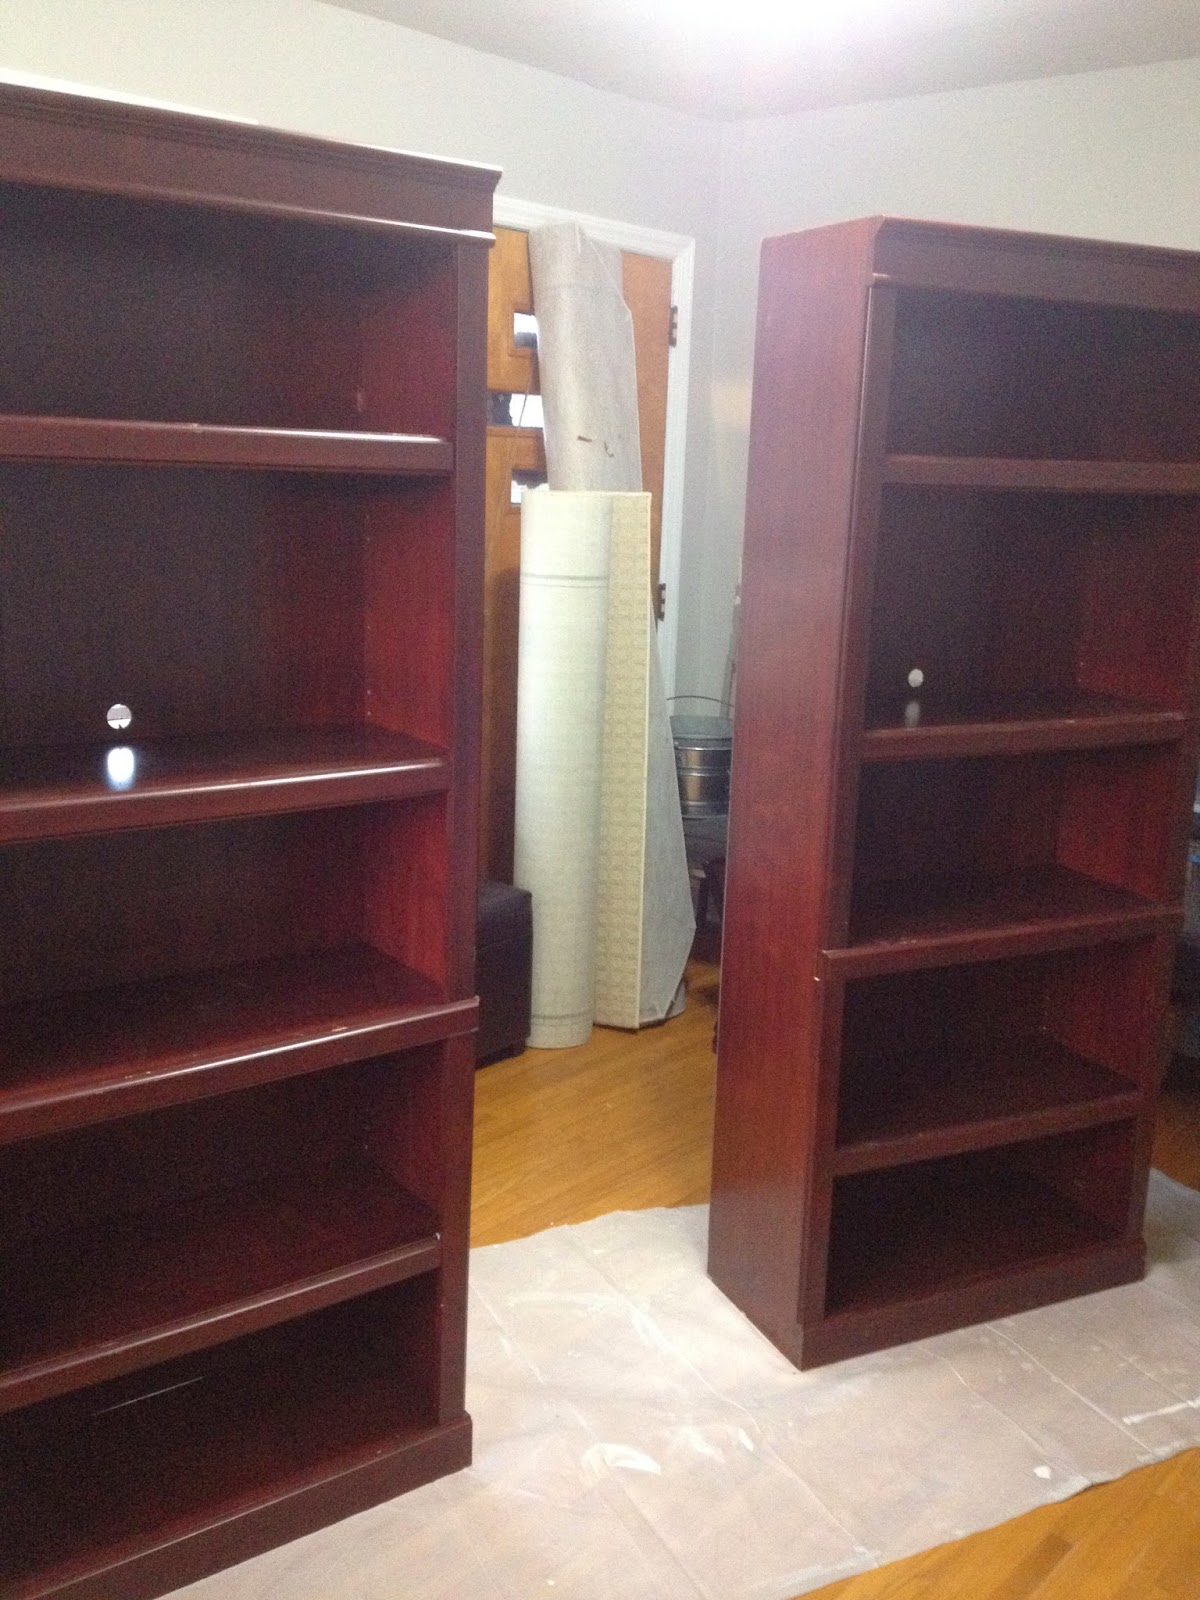 Marvelous photograph of Blissfully Chic DIY: Painting Laminate Bookshelves Dark to Bright! with #9D6B2E color and 1200x1600 pixels